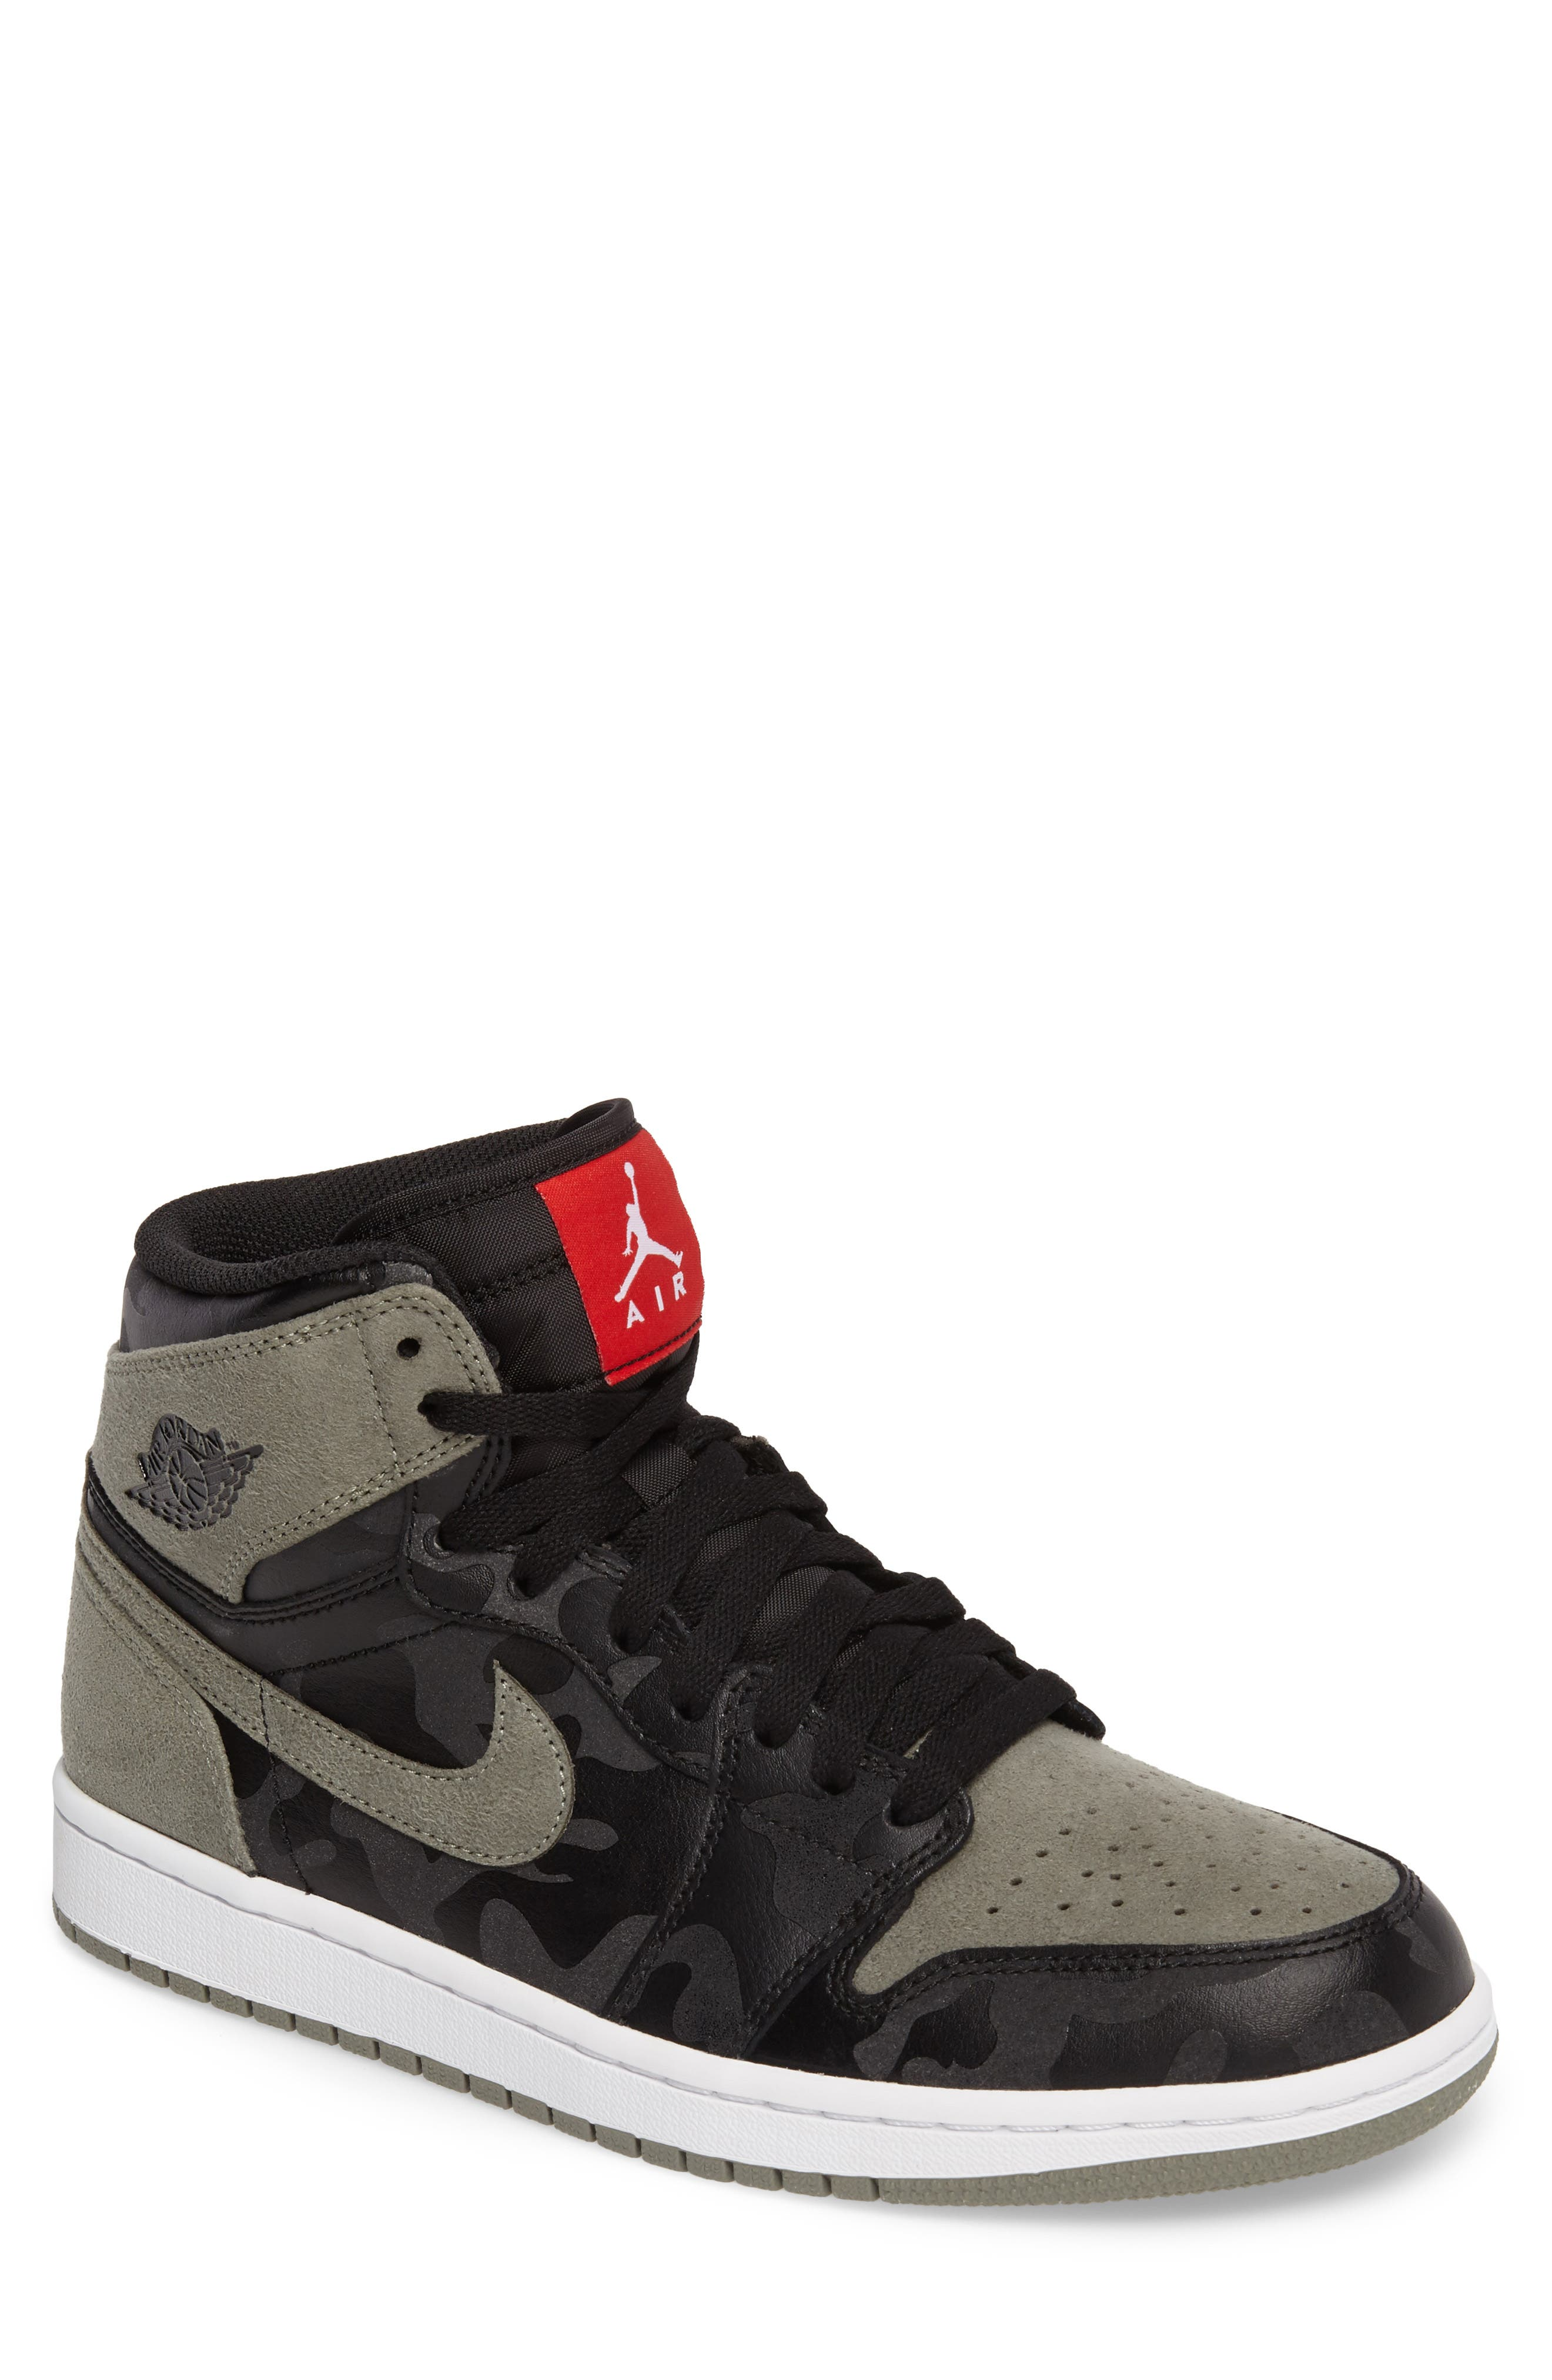 Air Jordan 1 Retro High Top Sneaker,                         Main,                         color, Black/ Black